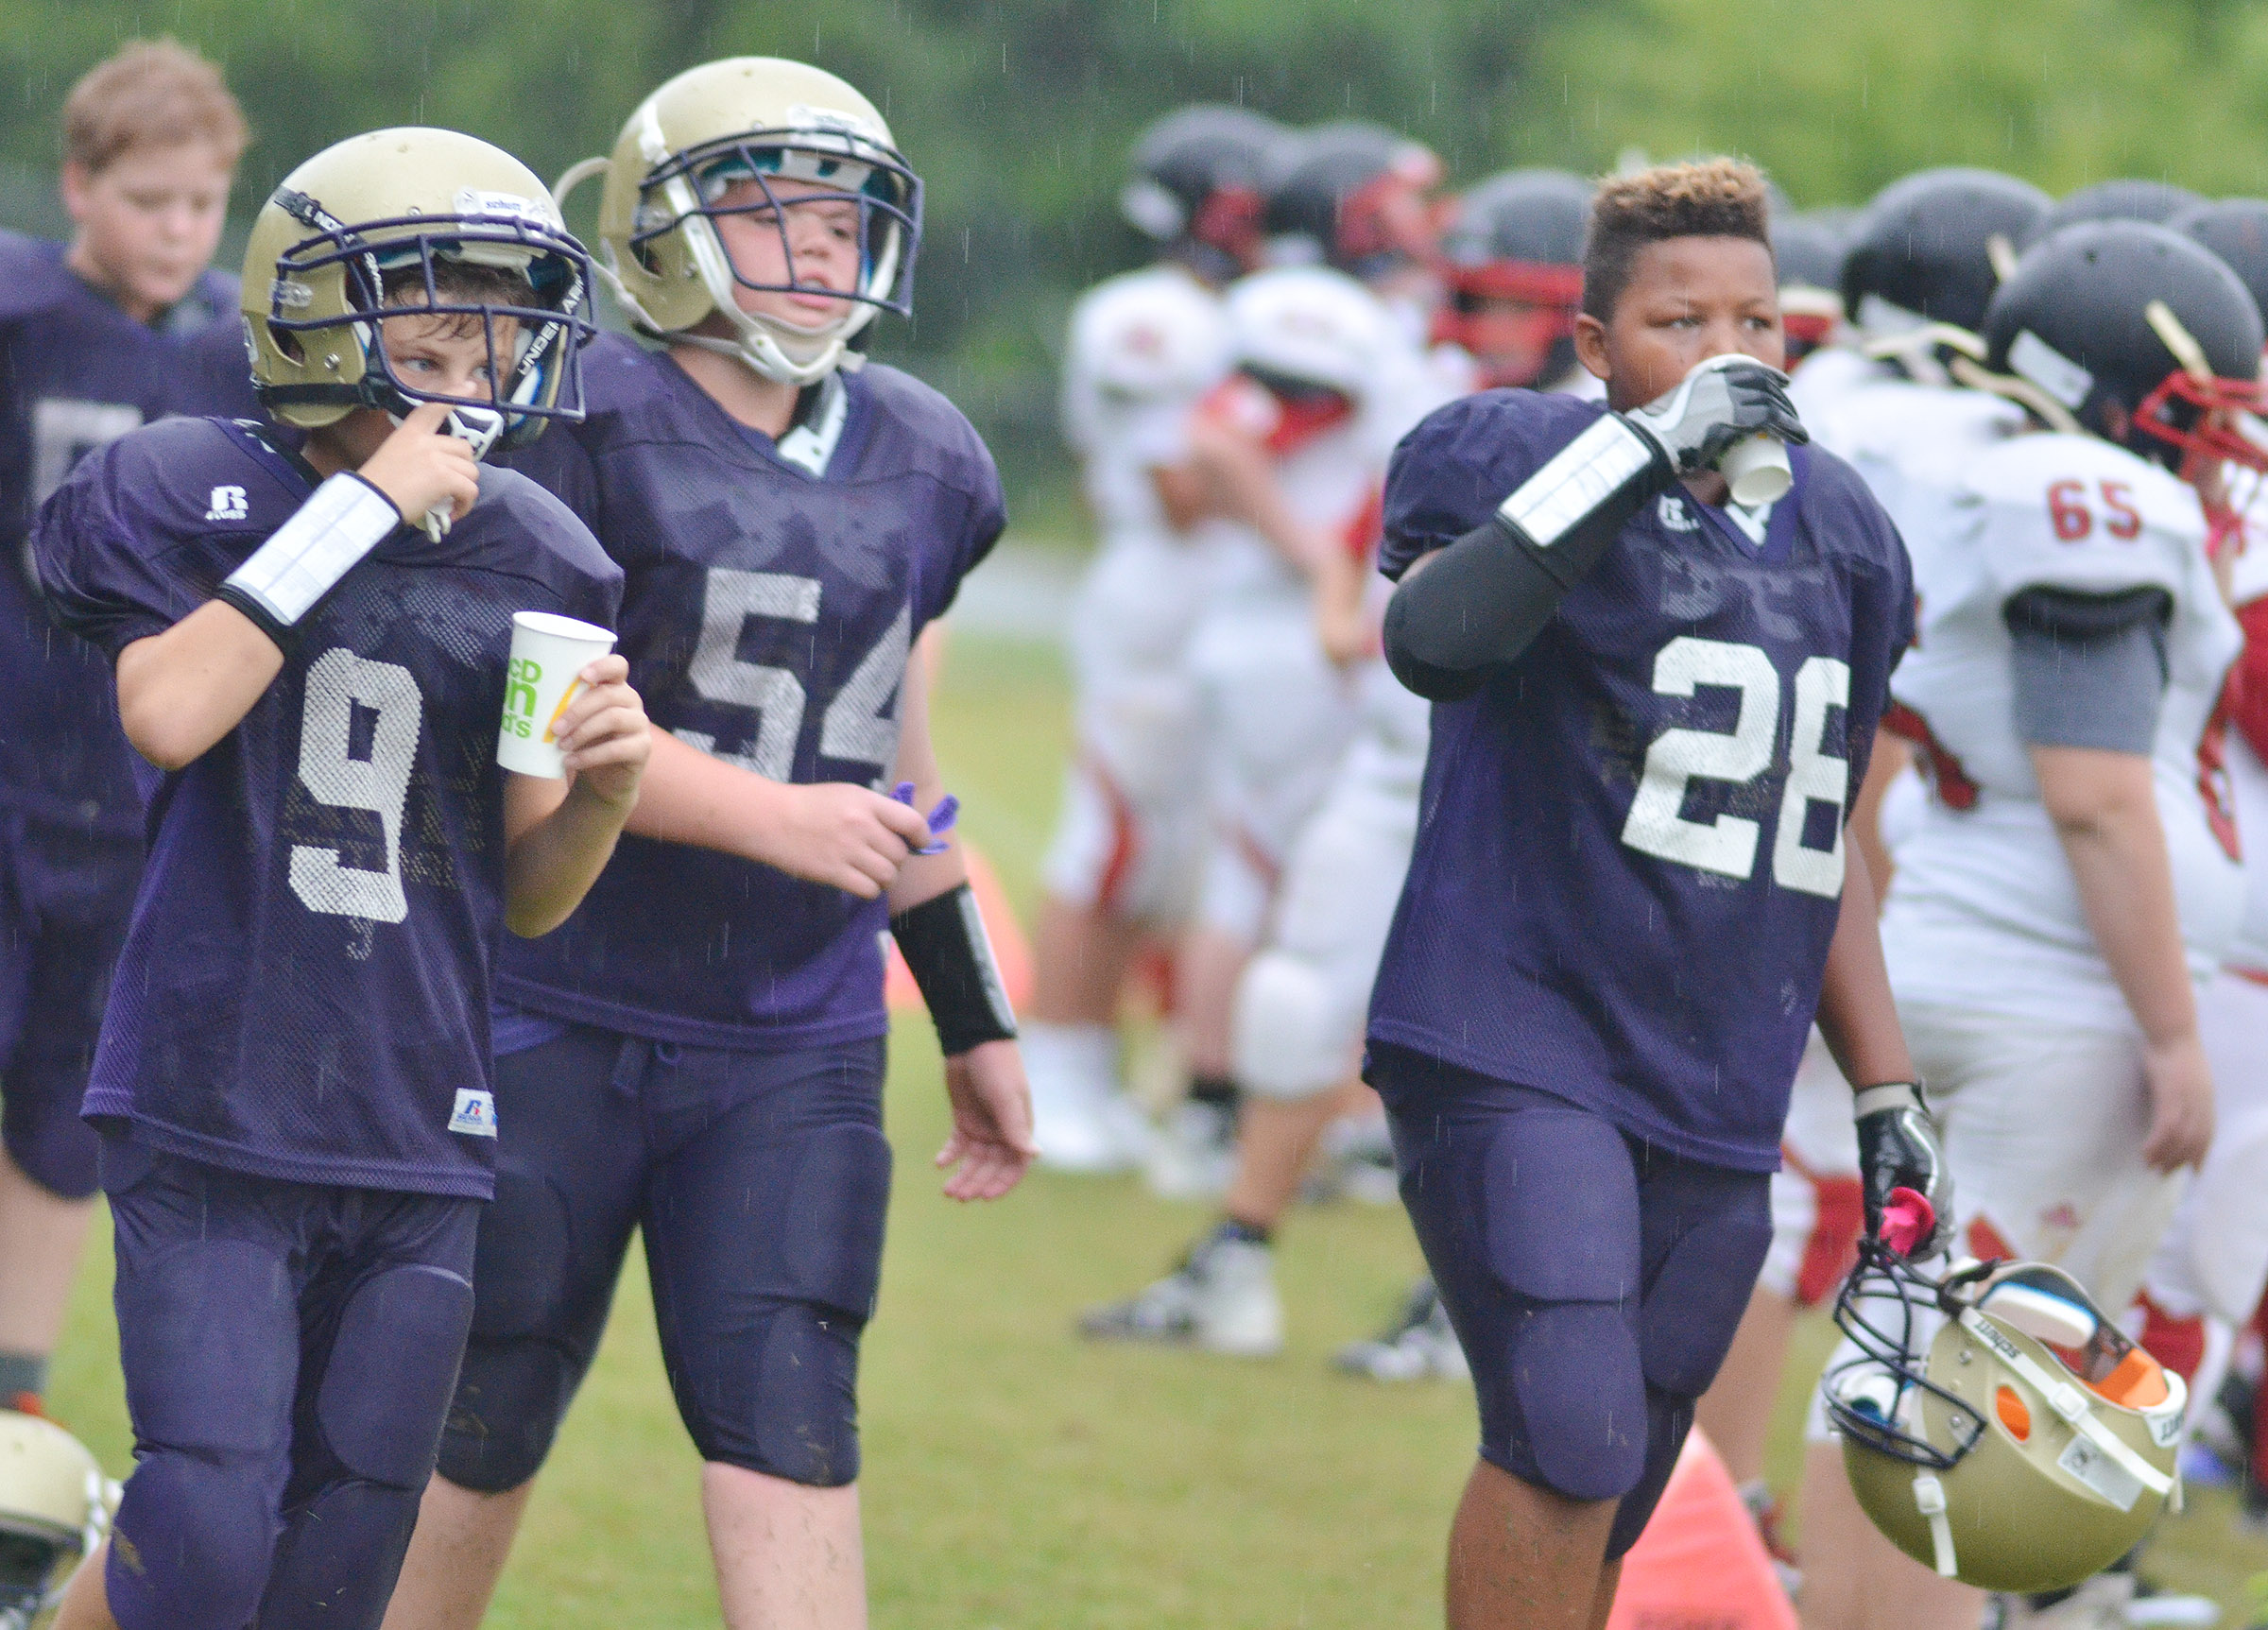 From left, sixth-grader Jaxon Sidebottom, and seventh-graders Hayden Jones and Keondre Weathers rest between plays.